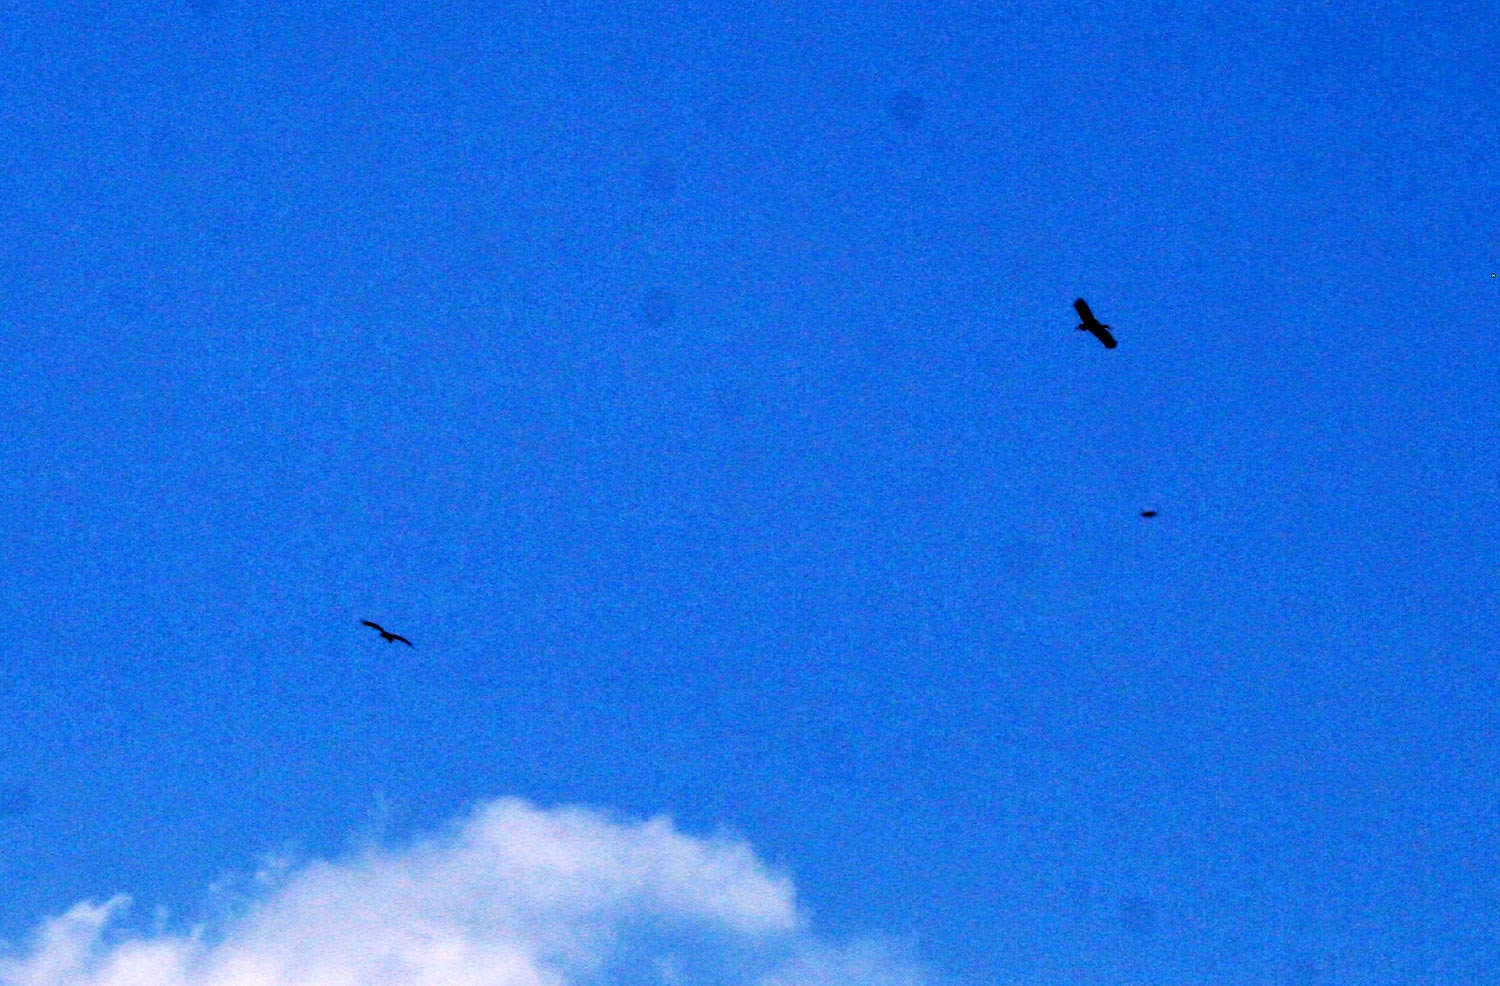 Vultures circling, but not for us